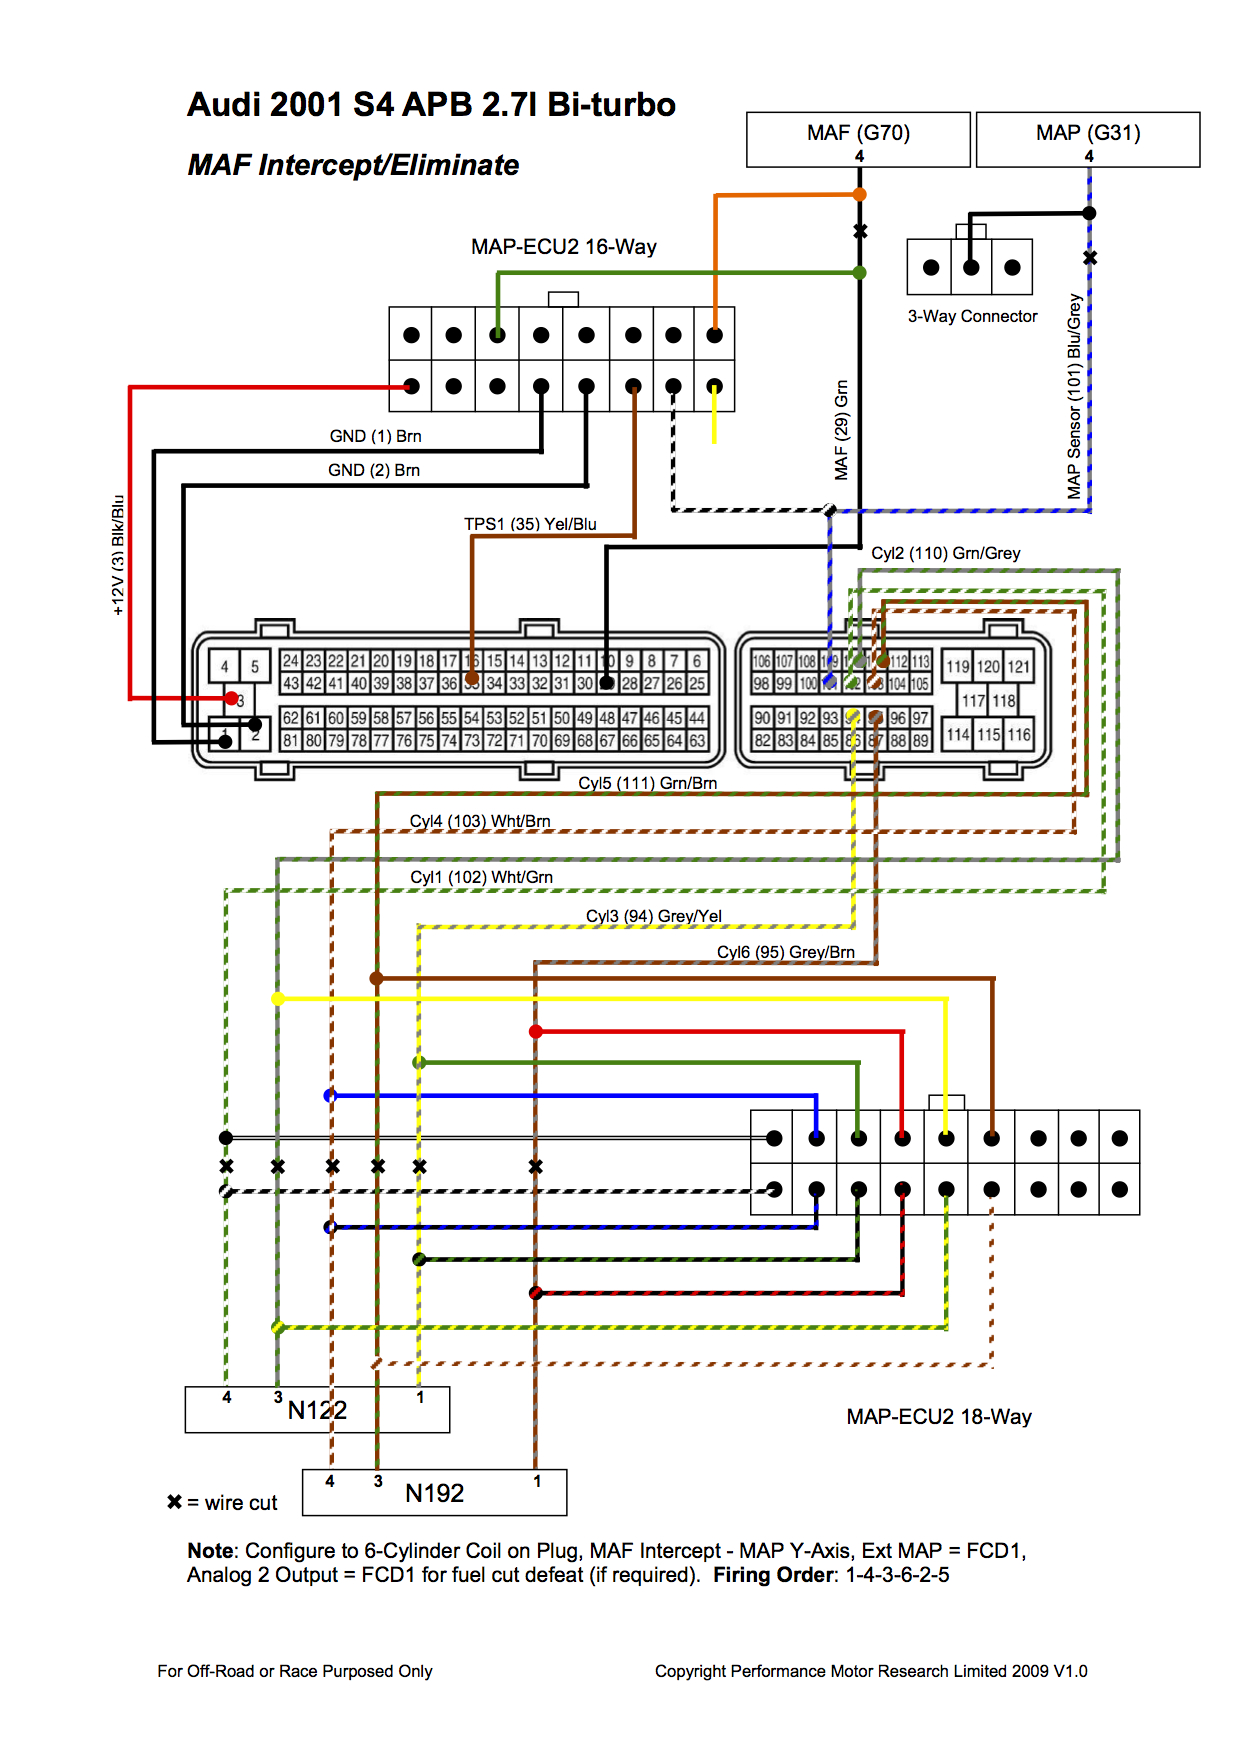 Audi S4 20011 ecu wiring diagram paccar ecu wiring diagram \u2022 wiring diagrams j  at gsmportal.co